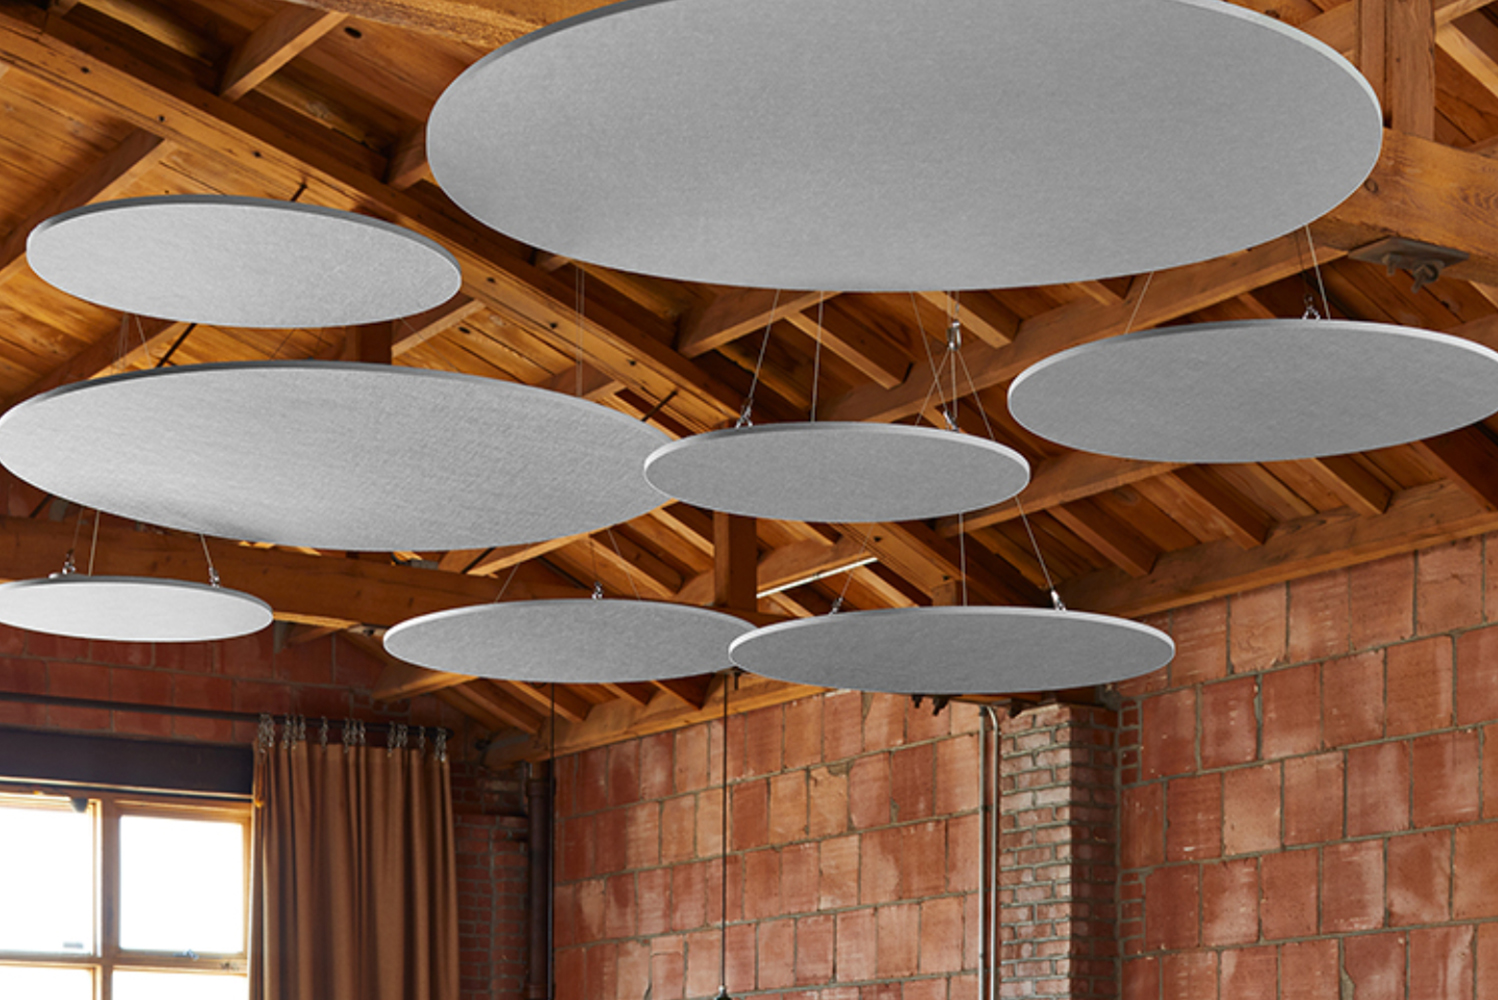 Introducing EchoCloud, a new acoustic ceiling system from Kirei.